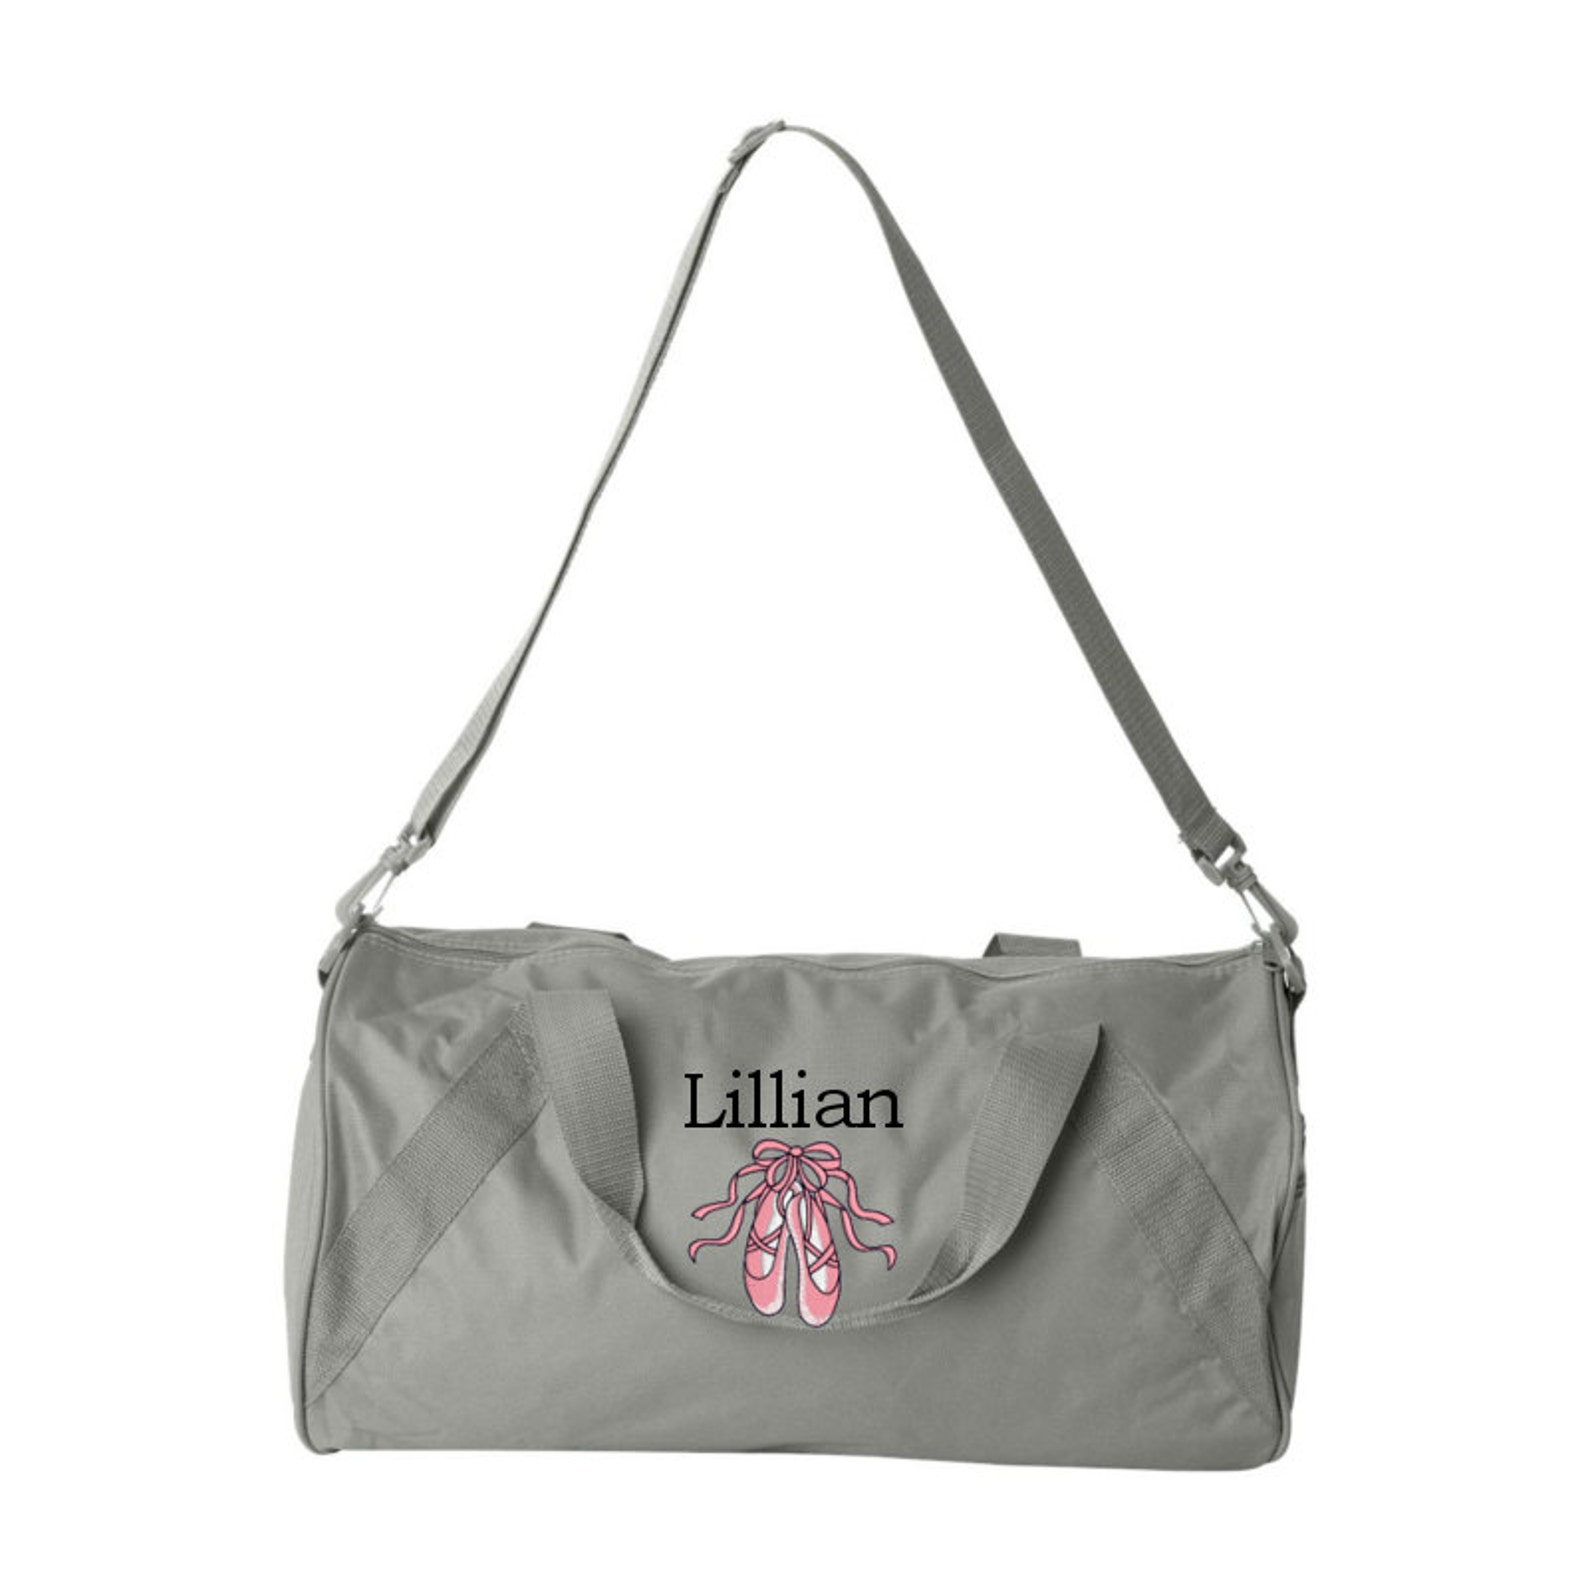 duffel bag * personalized ballet shoes duffle bags * sports dance team tote bag * custom ballerina bag with name * monogrammed g